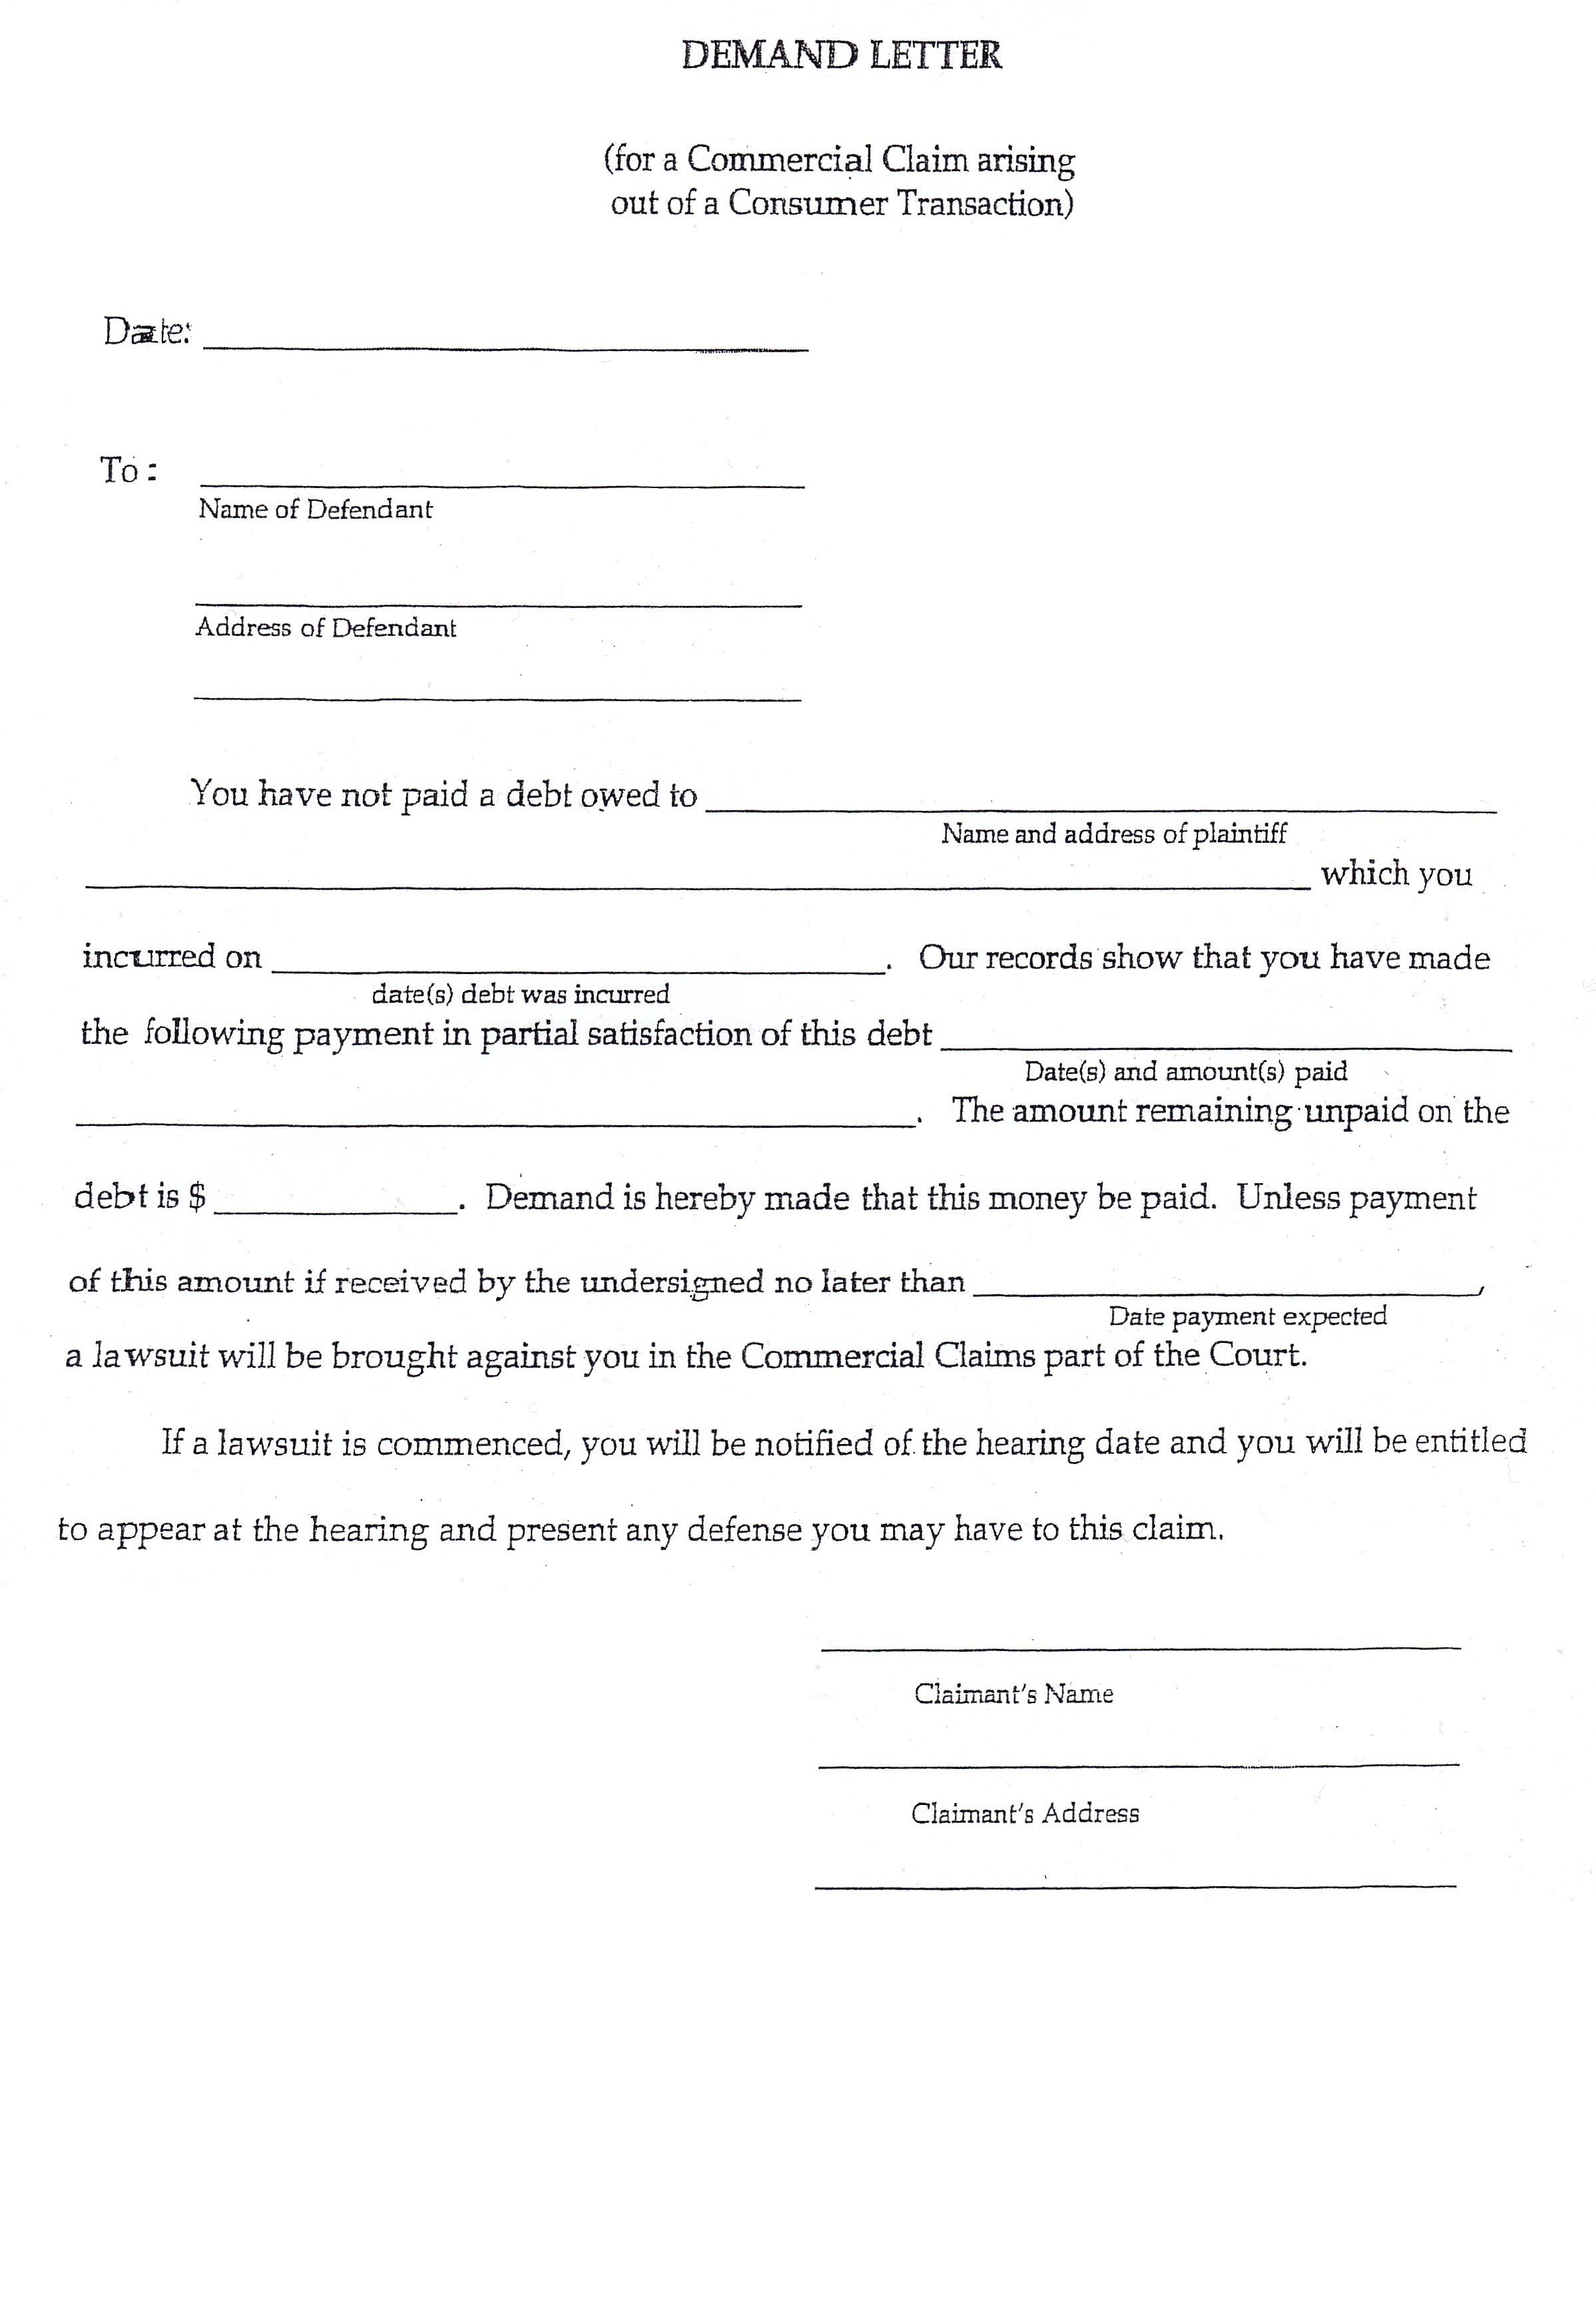 Small Claims Court Letter Of Demand Template Samples | Letter